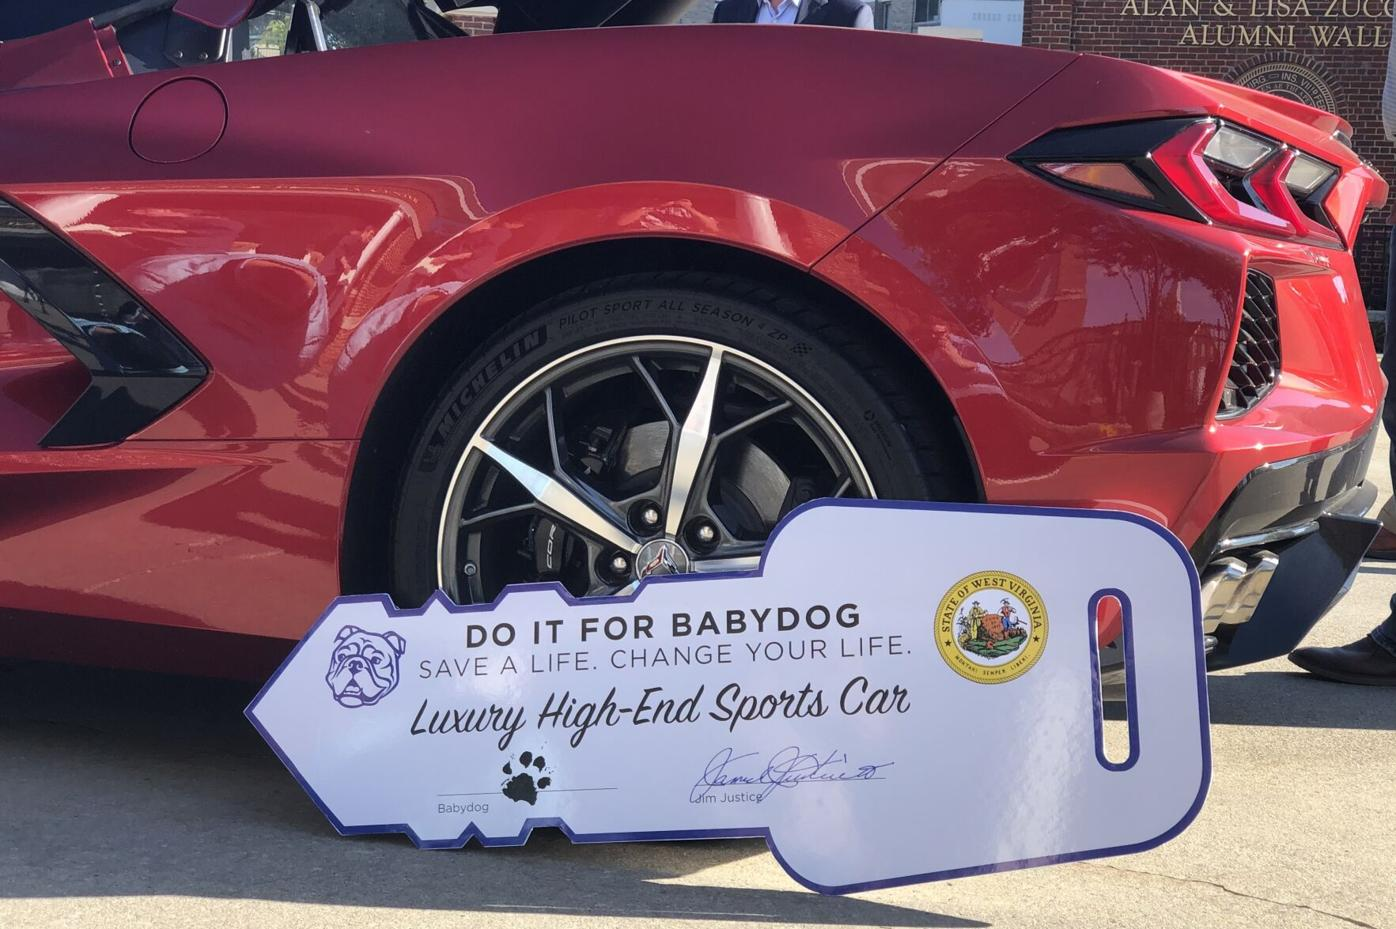 'Do it for Babydog' vaccine lottery sweepstakes; Sept. 30, 2021